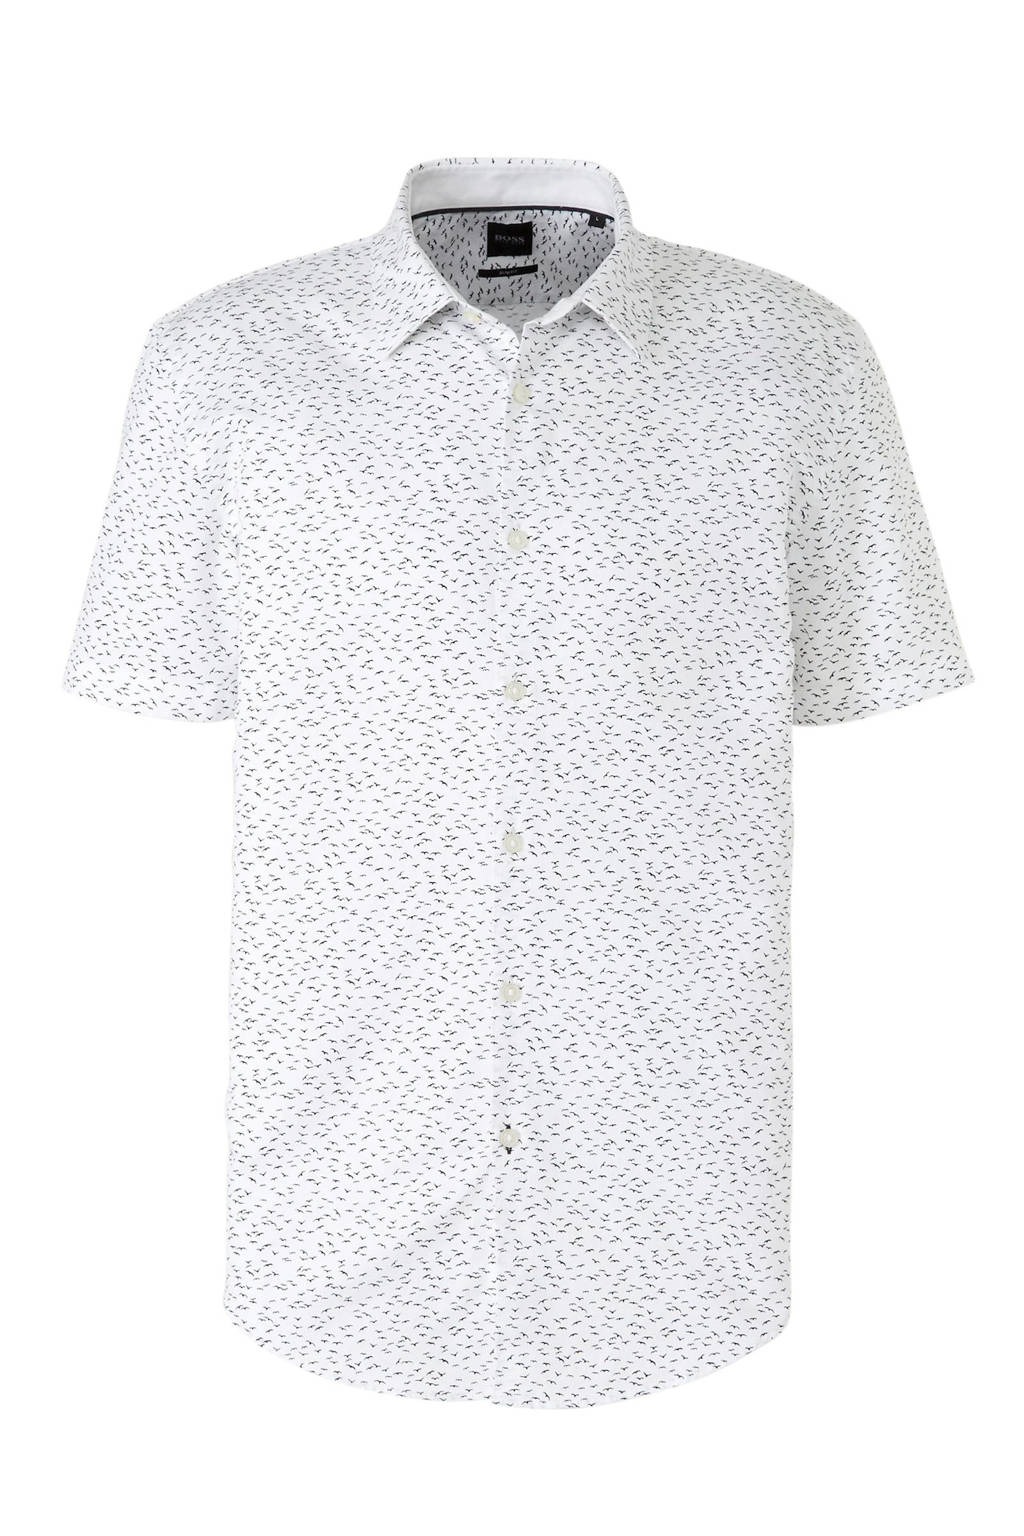 BOSS Menswear slim fit overhemd met all over print wit/zwart, Wit/zwart